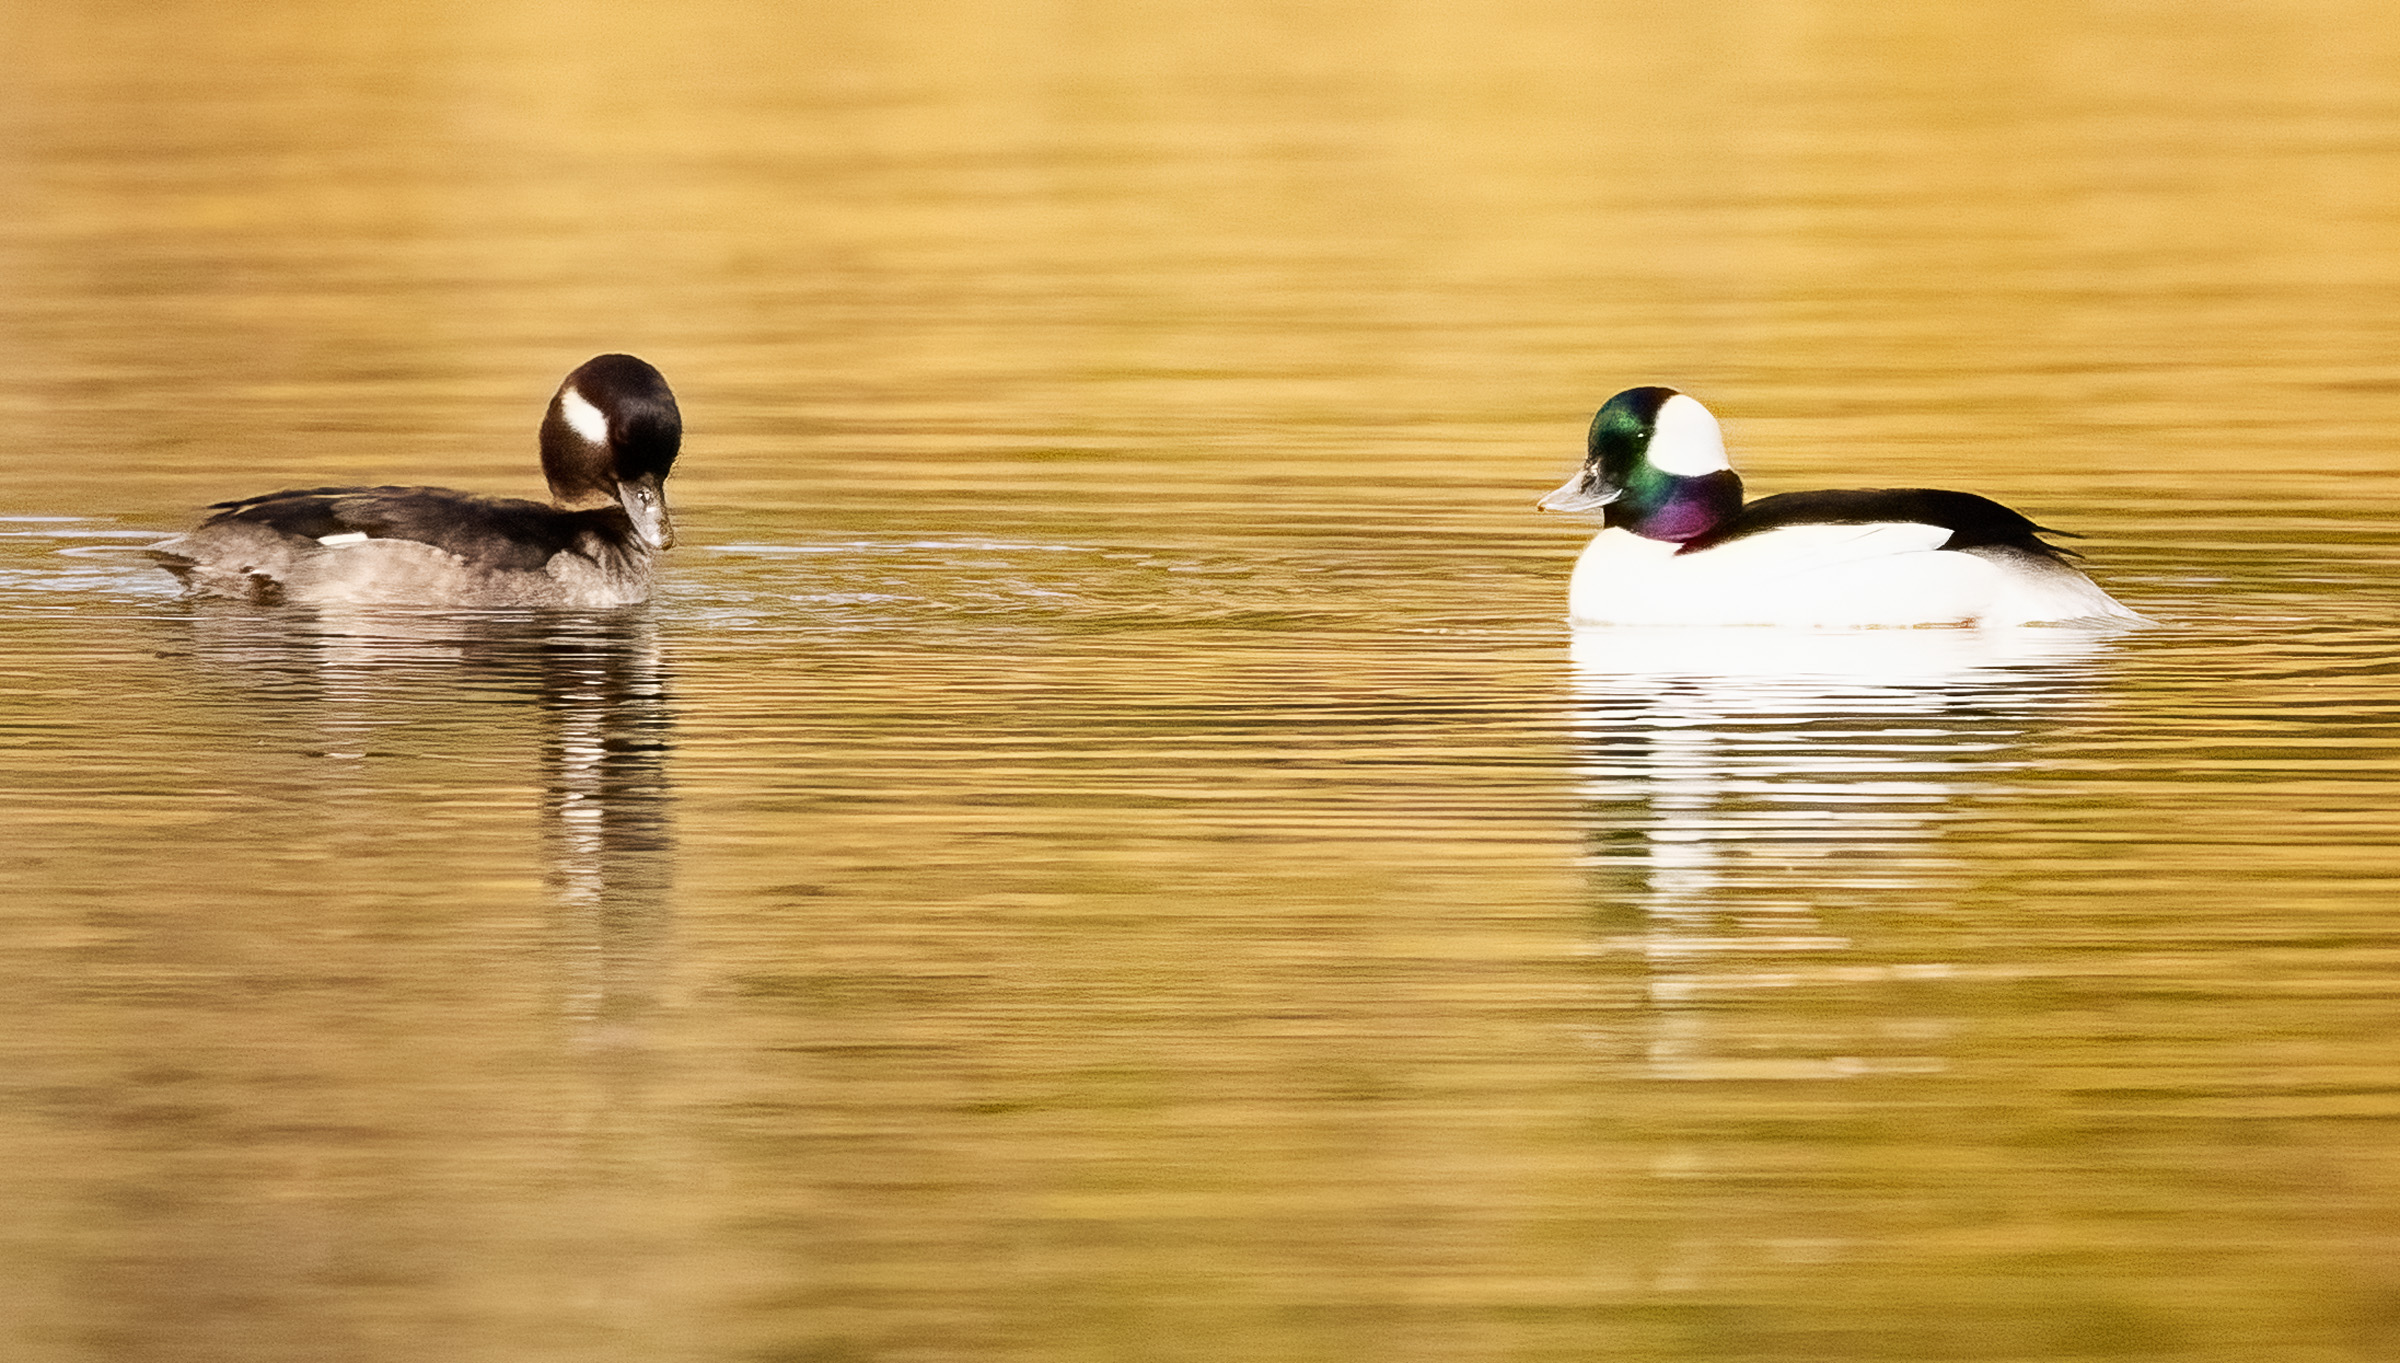 pair of buffleheads looking at each other in the waters of the golden light.